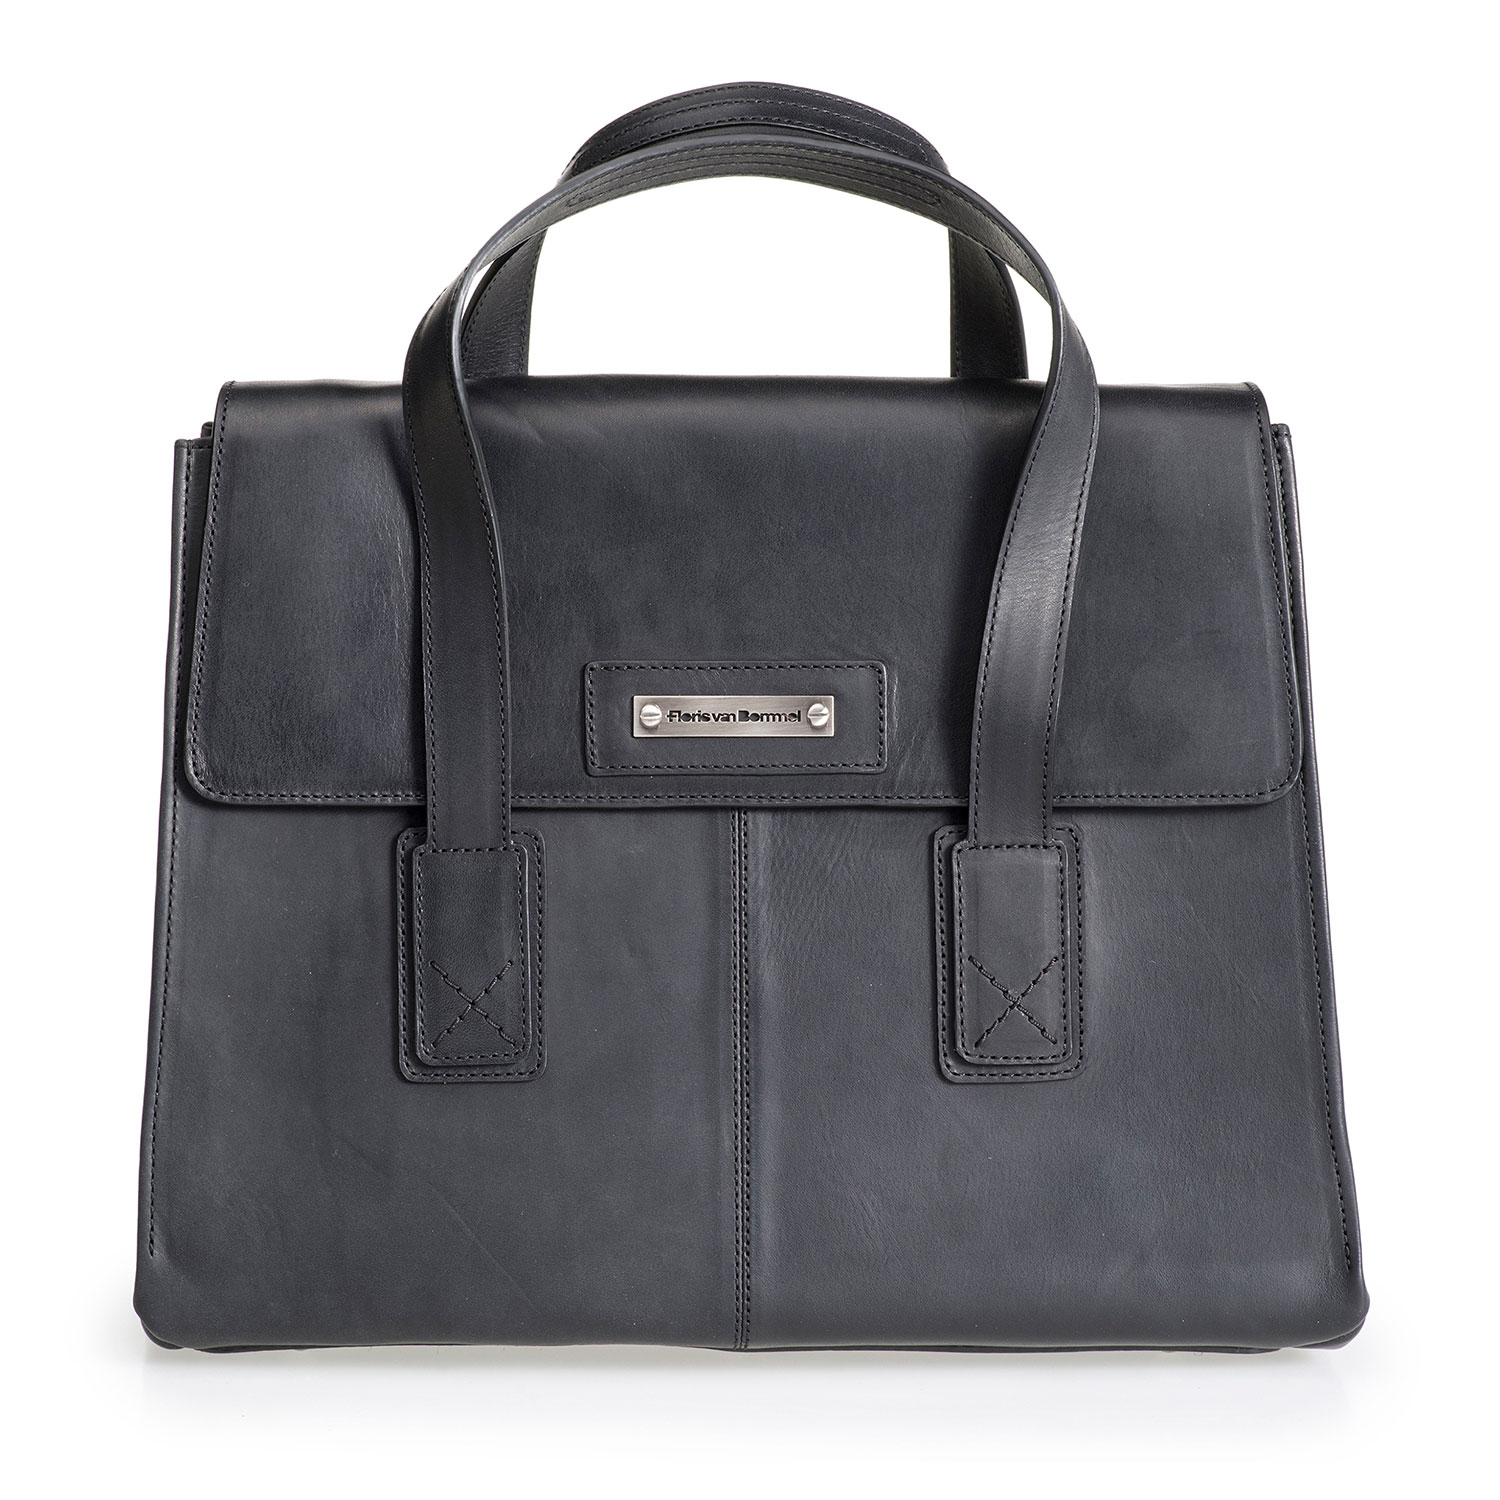 89009/00 - Black leather business bag